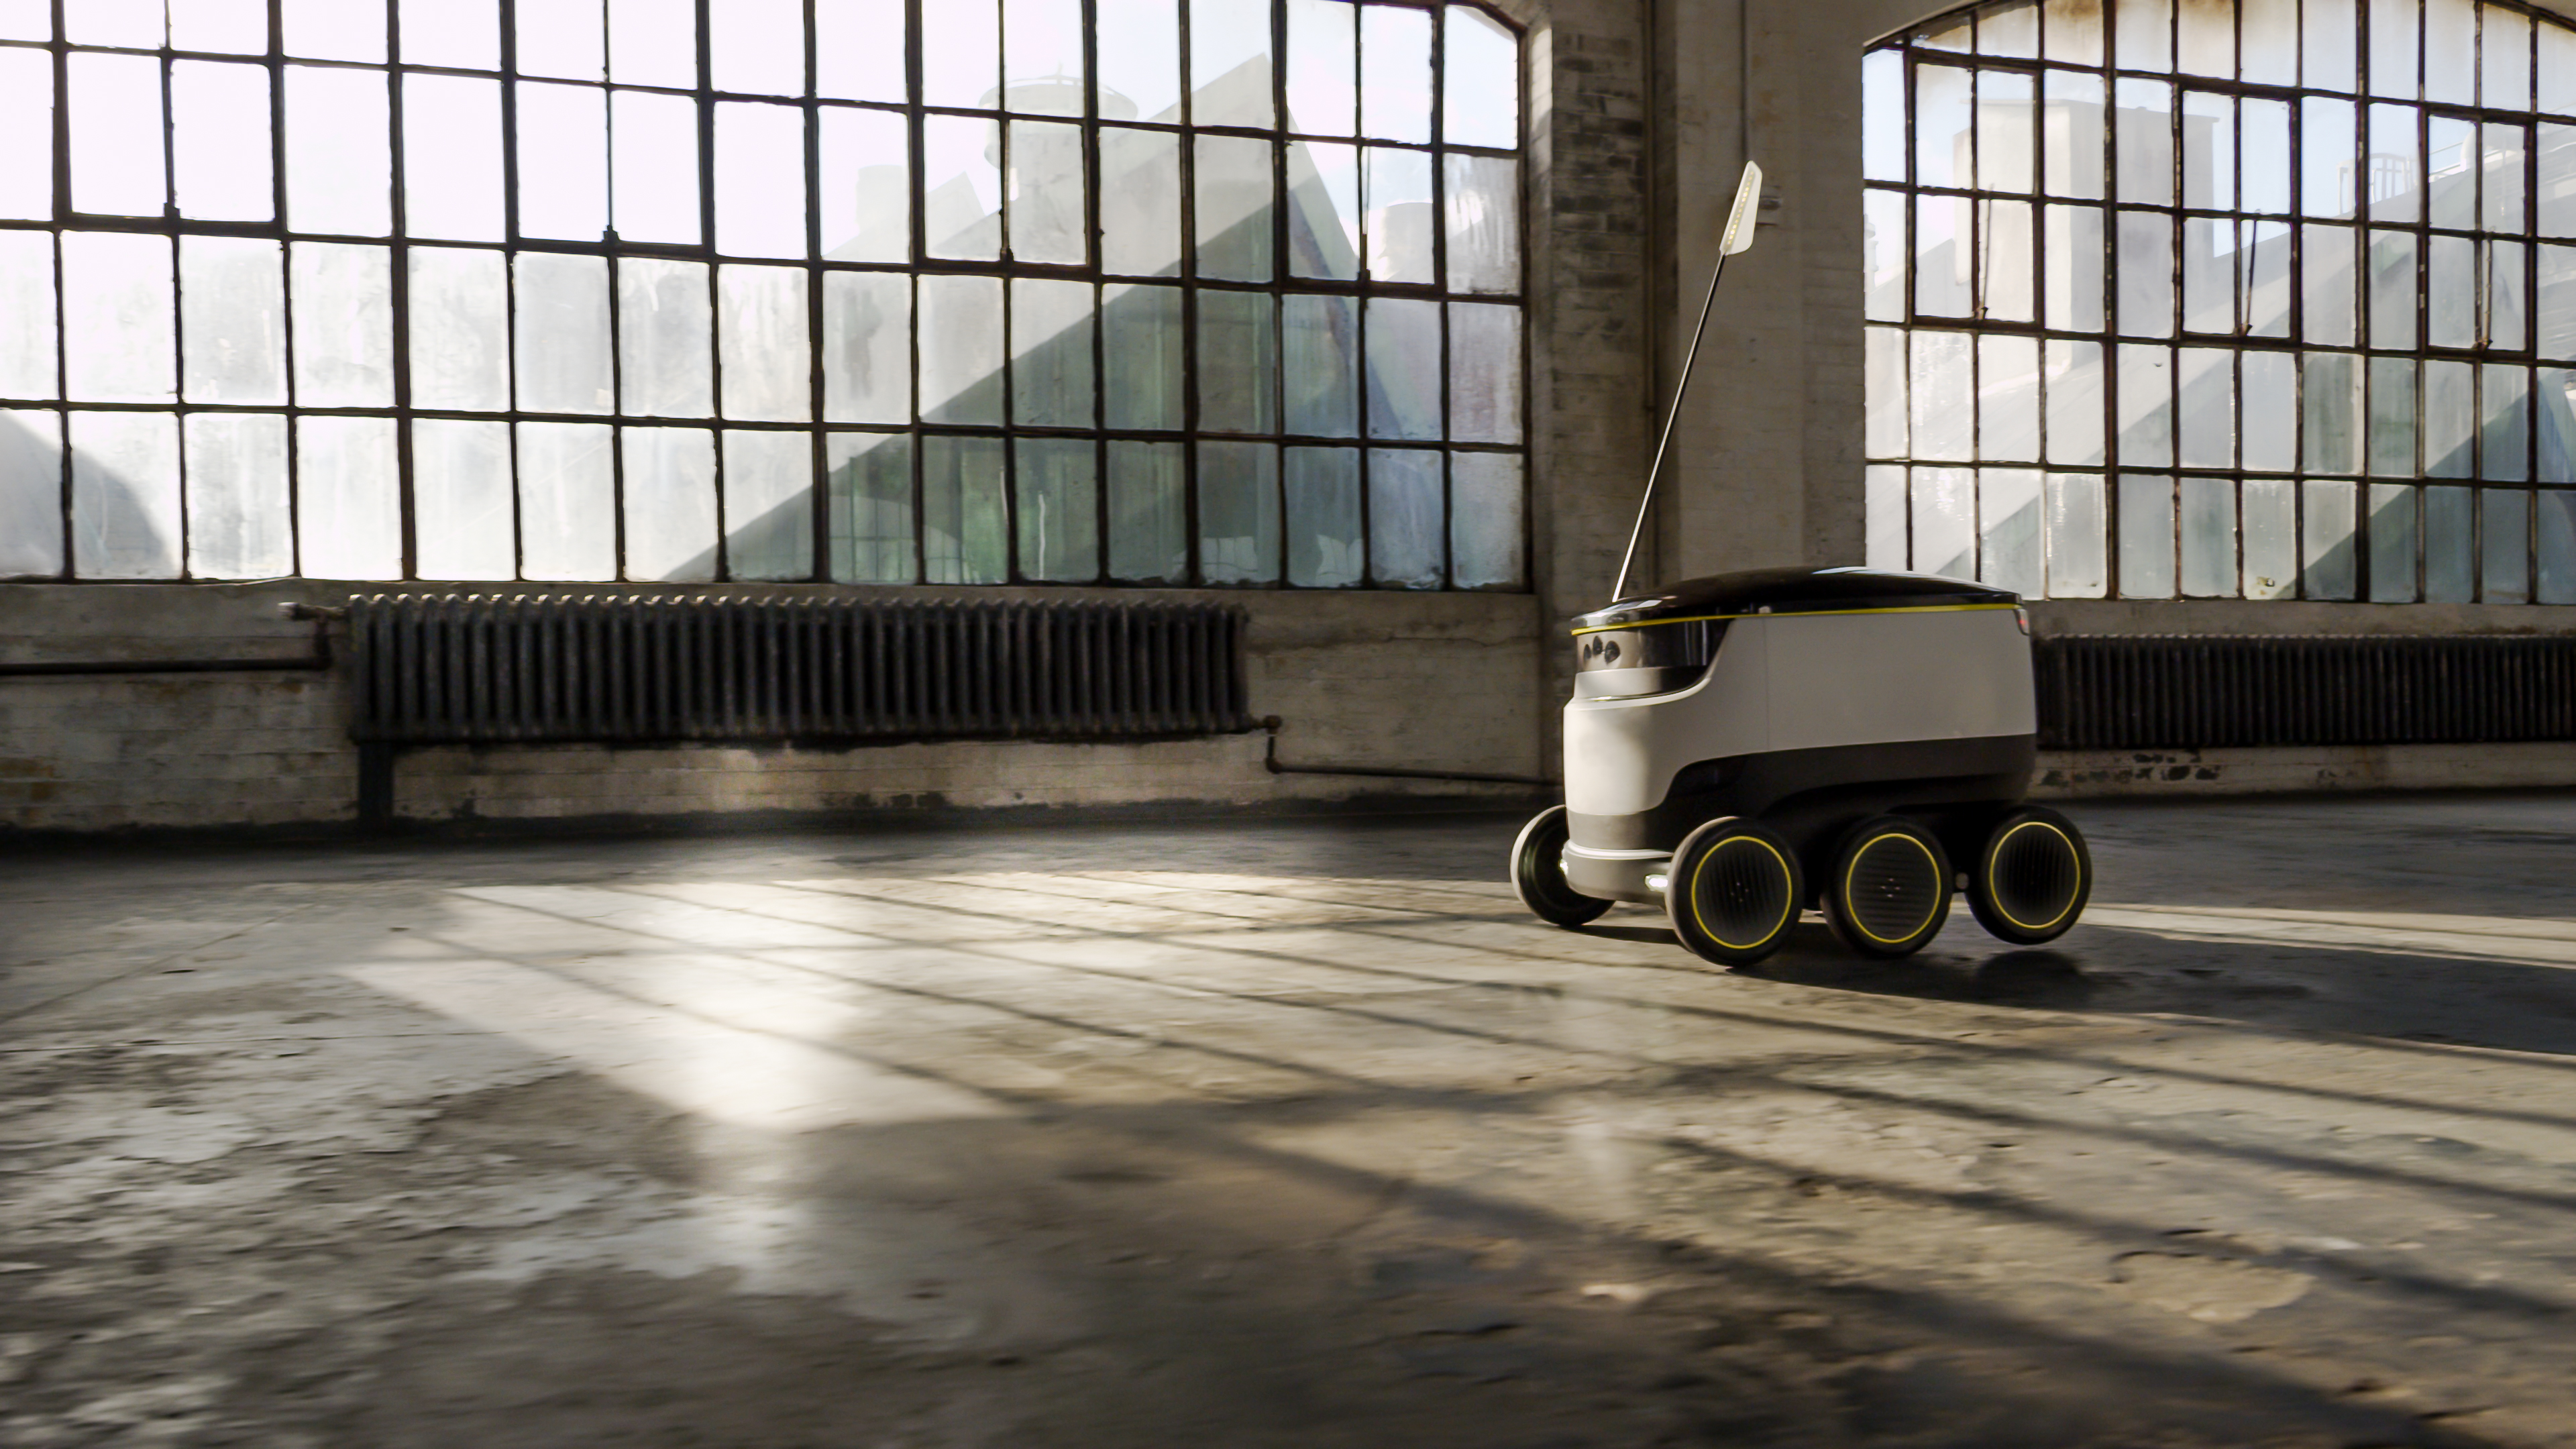 Starship Technologies' delivery robot